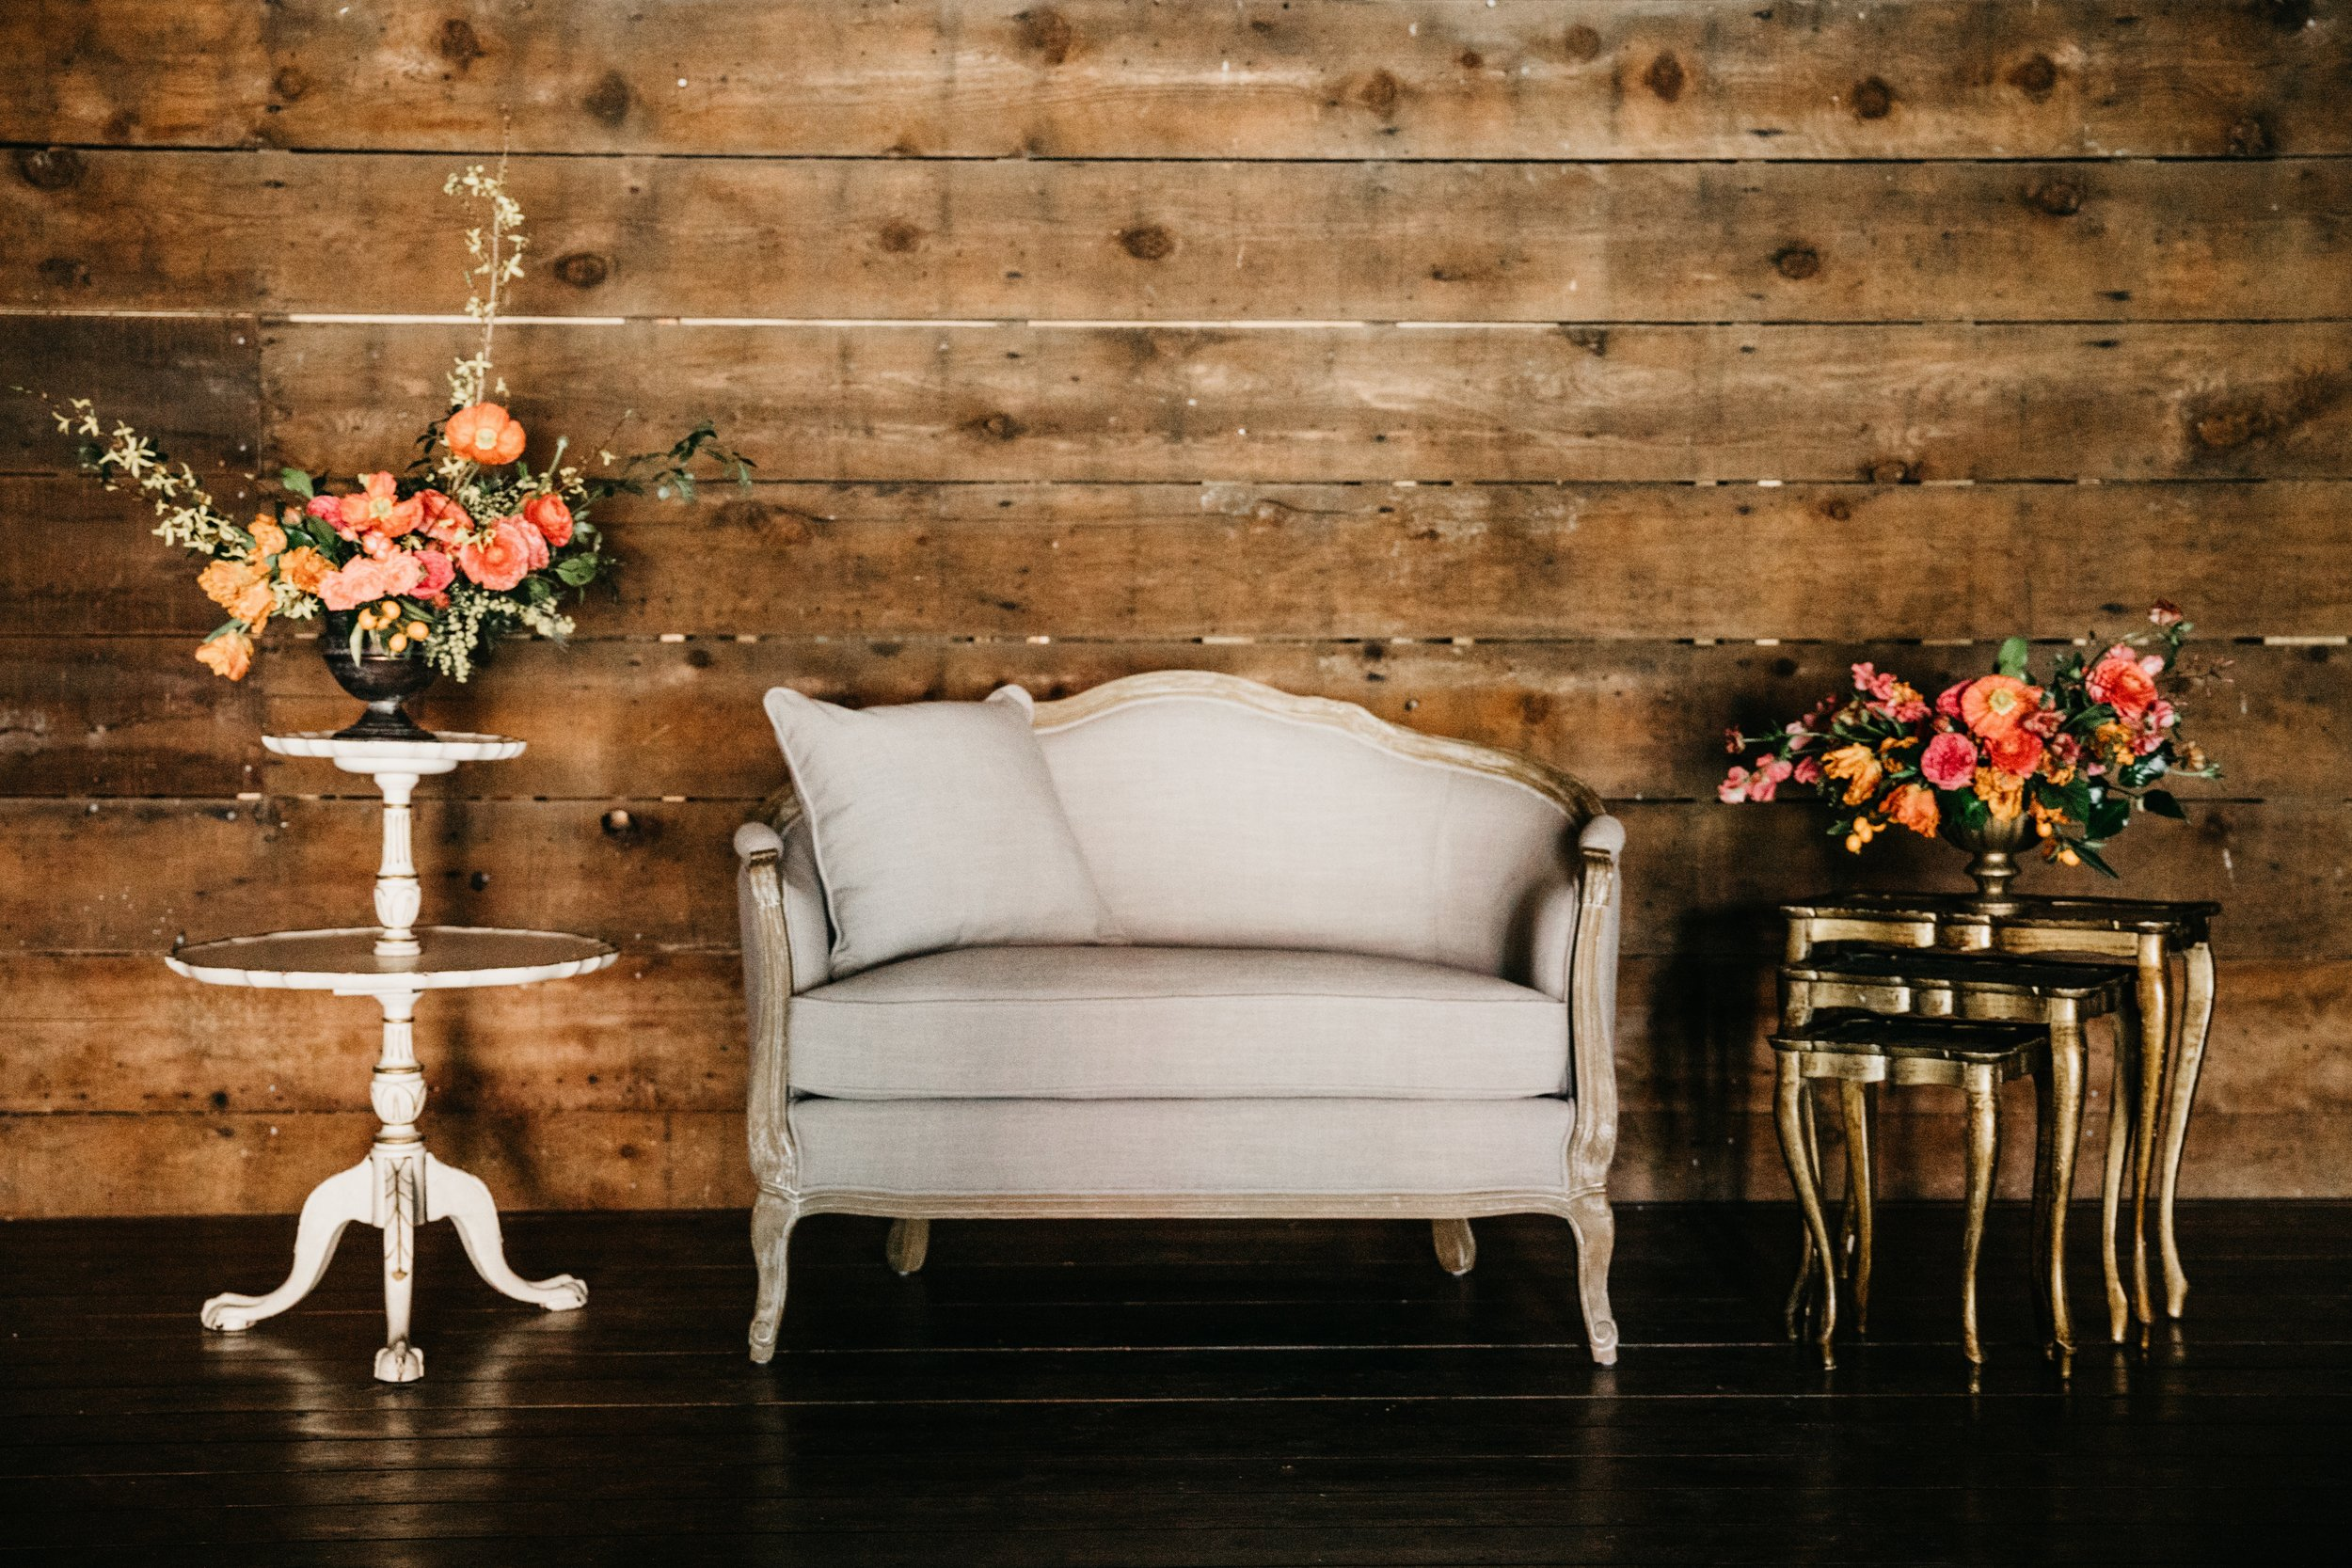 Clementine love seat $150 {qty 1}